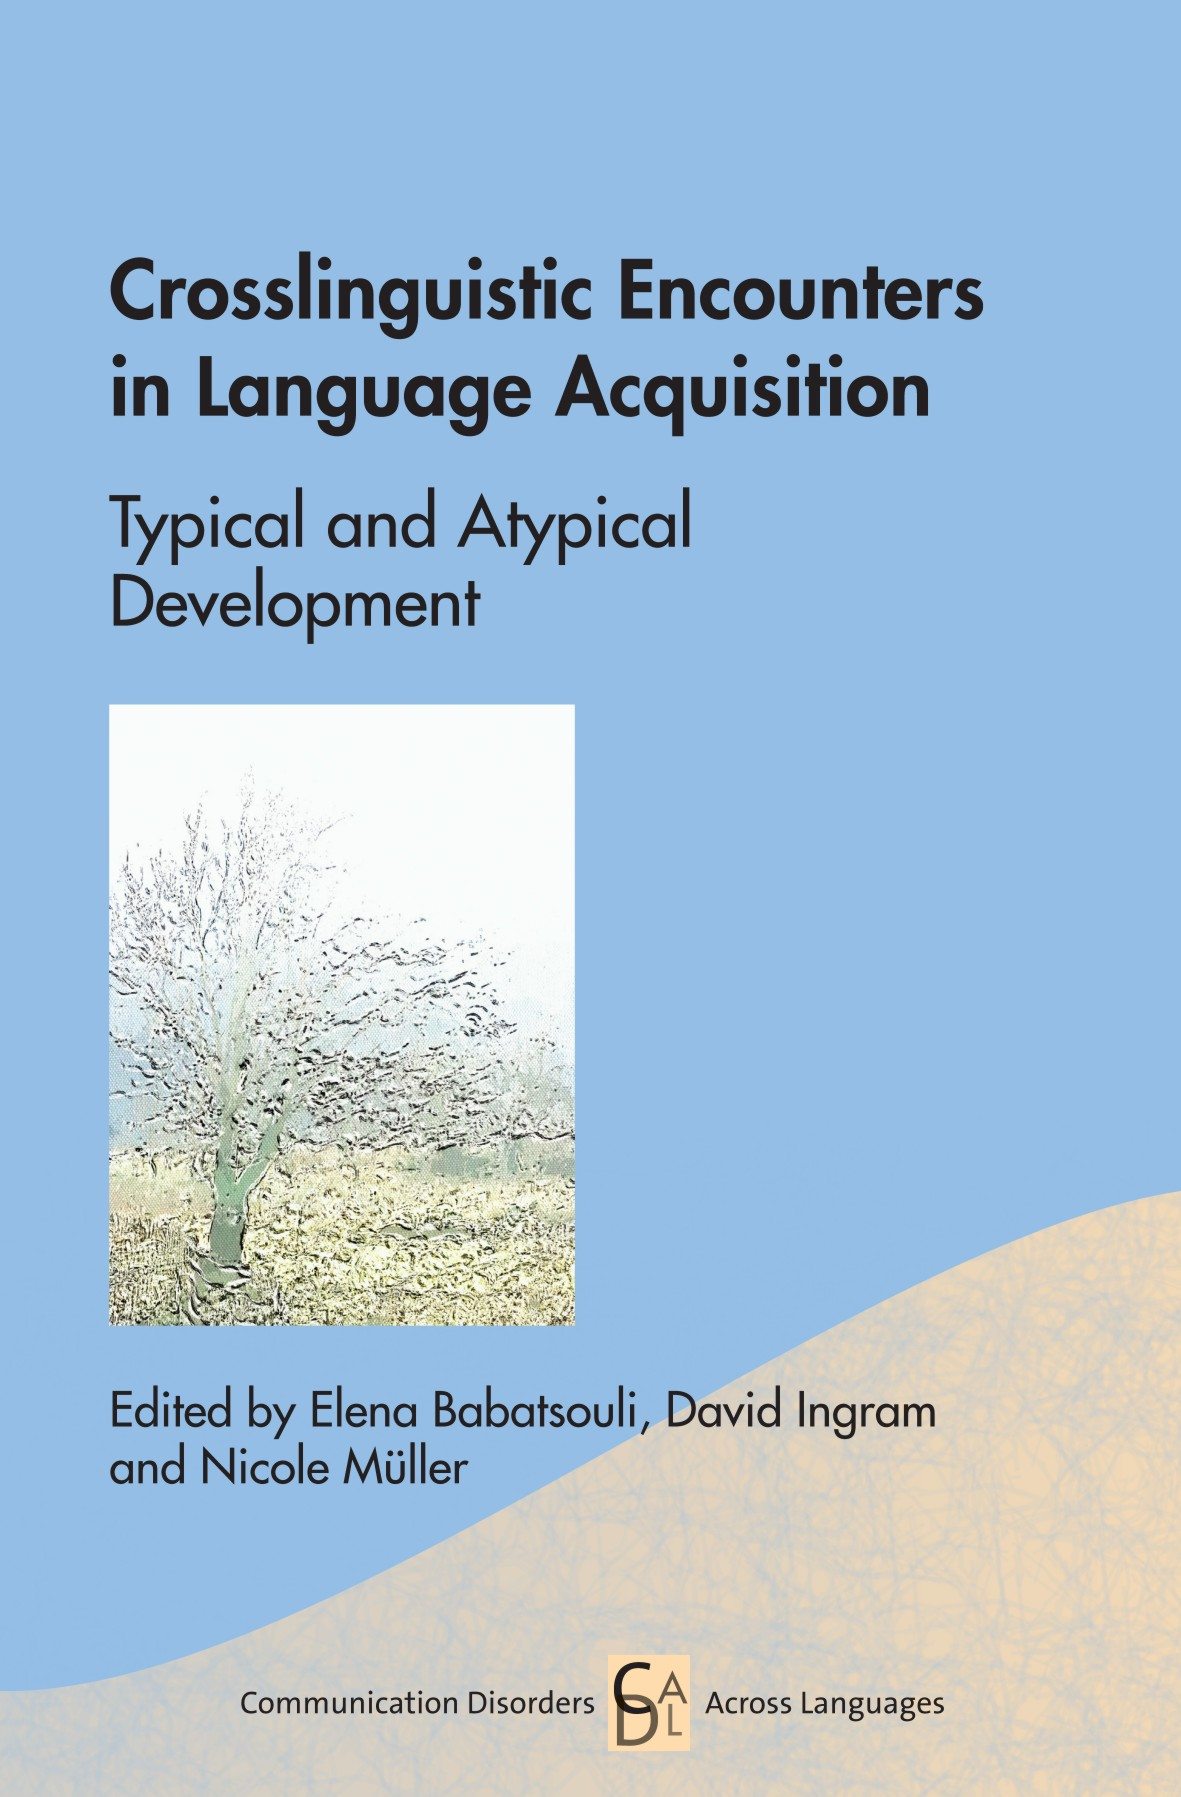 Crosslinguistic Encounters: typical/Atypical acquisition